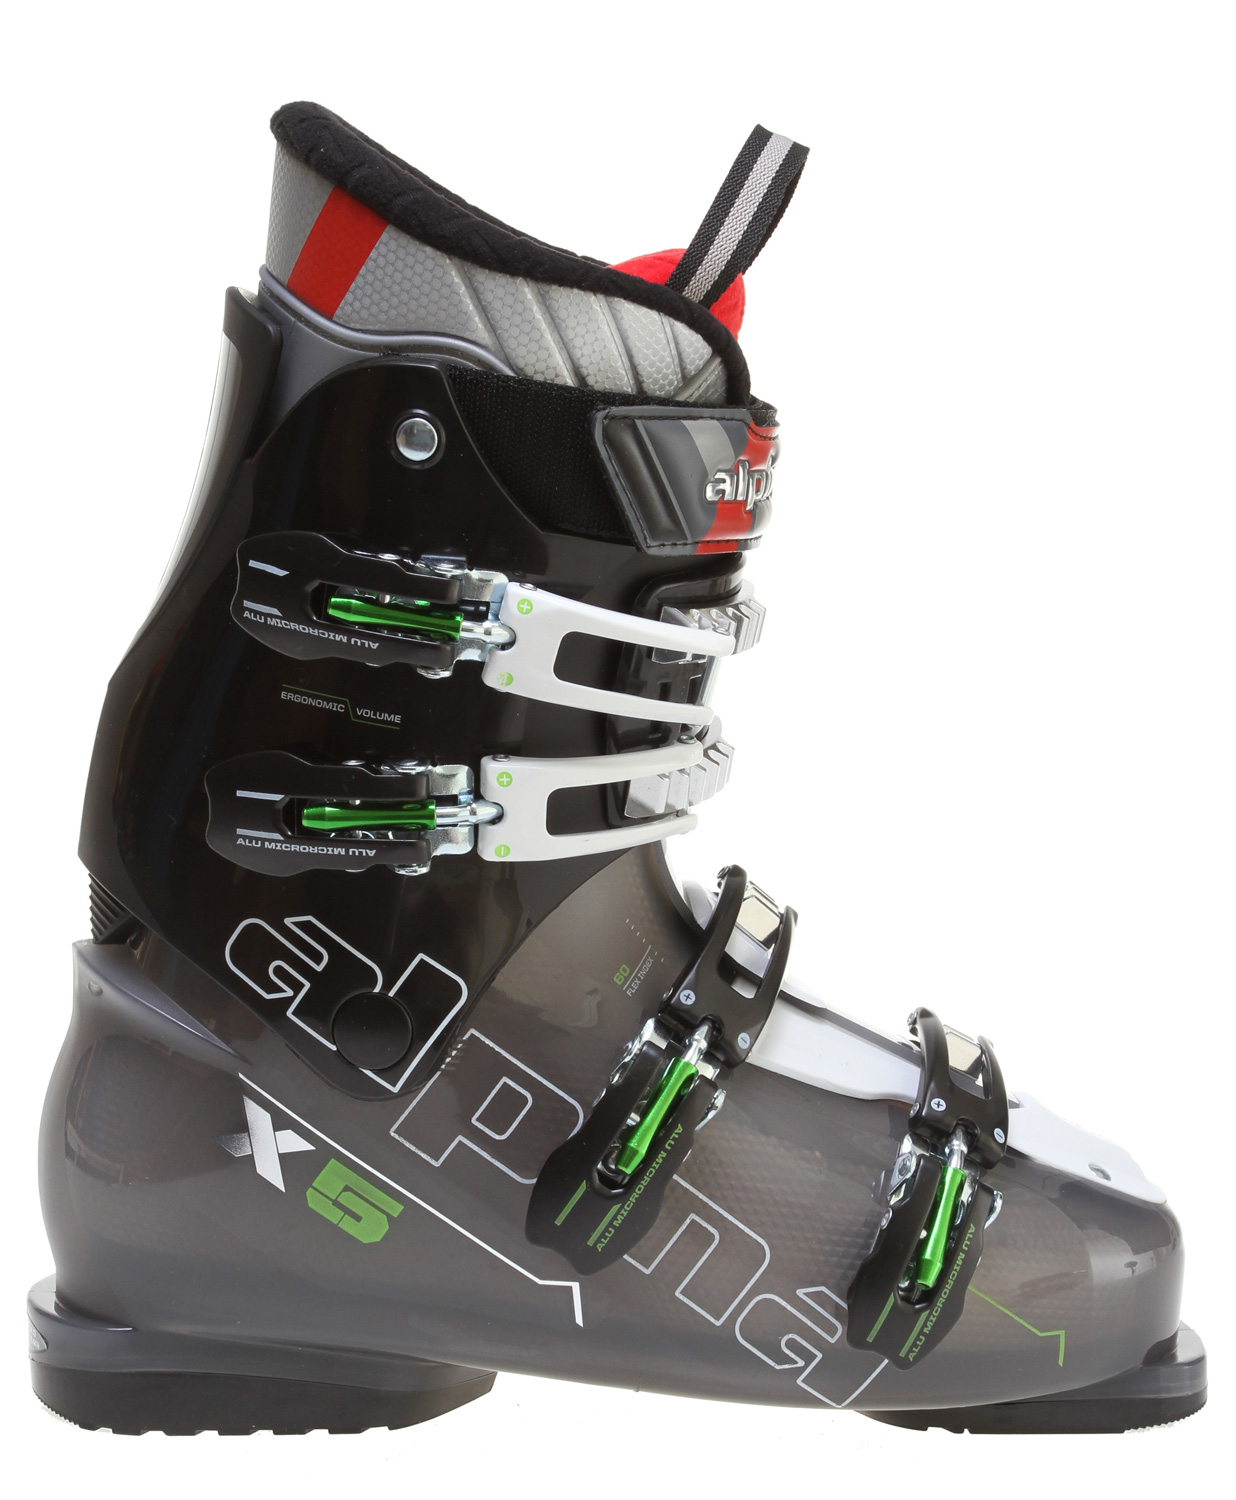 Ski Key Features of the Alpina X5 Ski Boots: Sport fit liner PP shell & cuff material Flex Index 60 Men's last Ergonomic shell volume Anatomic footbed Thermo unifit padding New ALU micro adjustable buckles Macro adjustable catches Power strap 35mm - $168.95